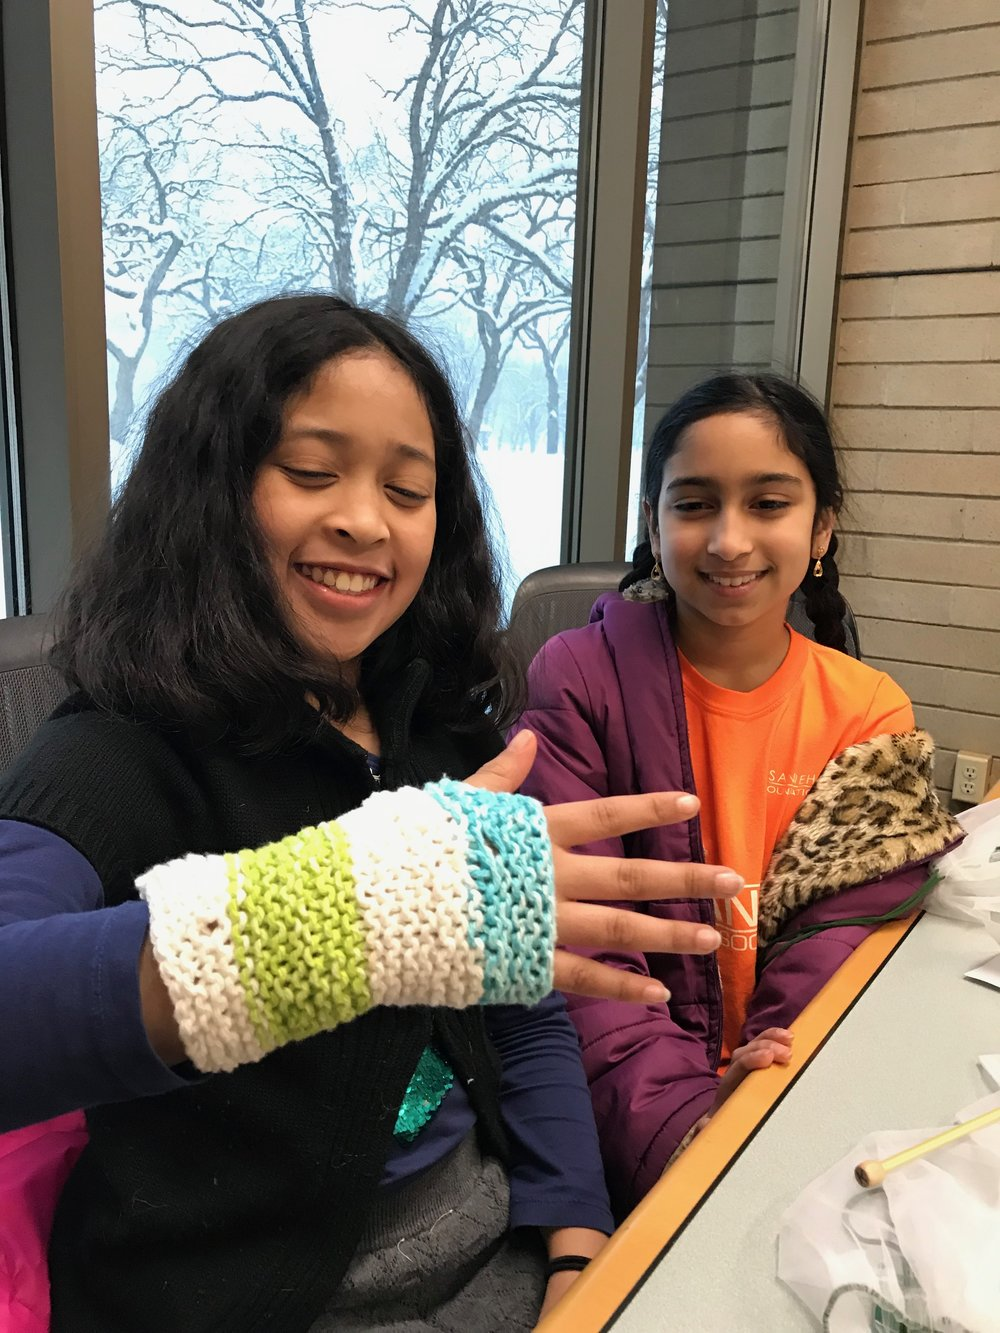 Tatum's finished fingerless glove. Now she will learn how to Purl and will start the other one. Good job, Tatum!